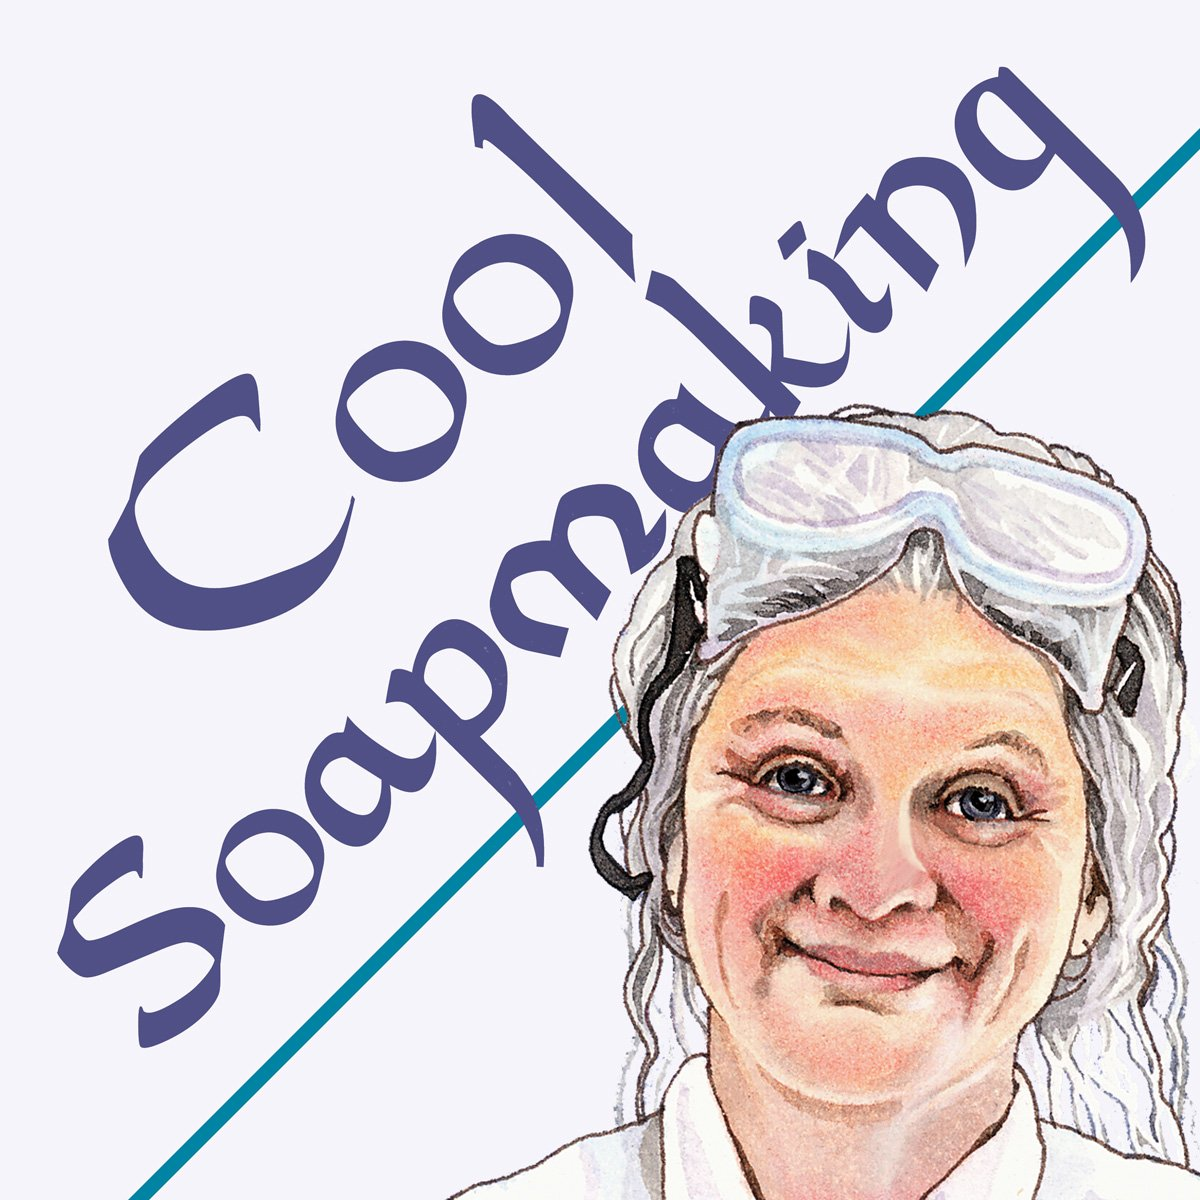 Cool Soapmaking: The Smart Guide to Low-Temp Tricks for Making Soap, or How to Handle Fussy Ingredients Like Milk, Citrus, Cucumber, Pine Tar, Beer, and Wine (Anne's Soap Making Books)